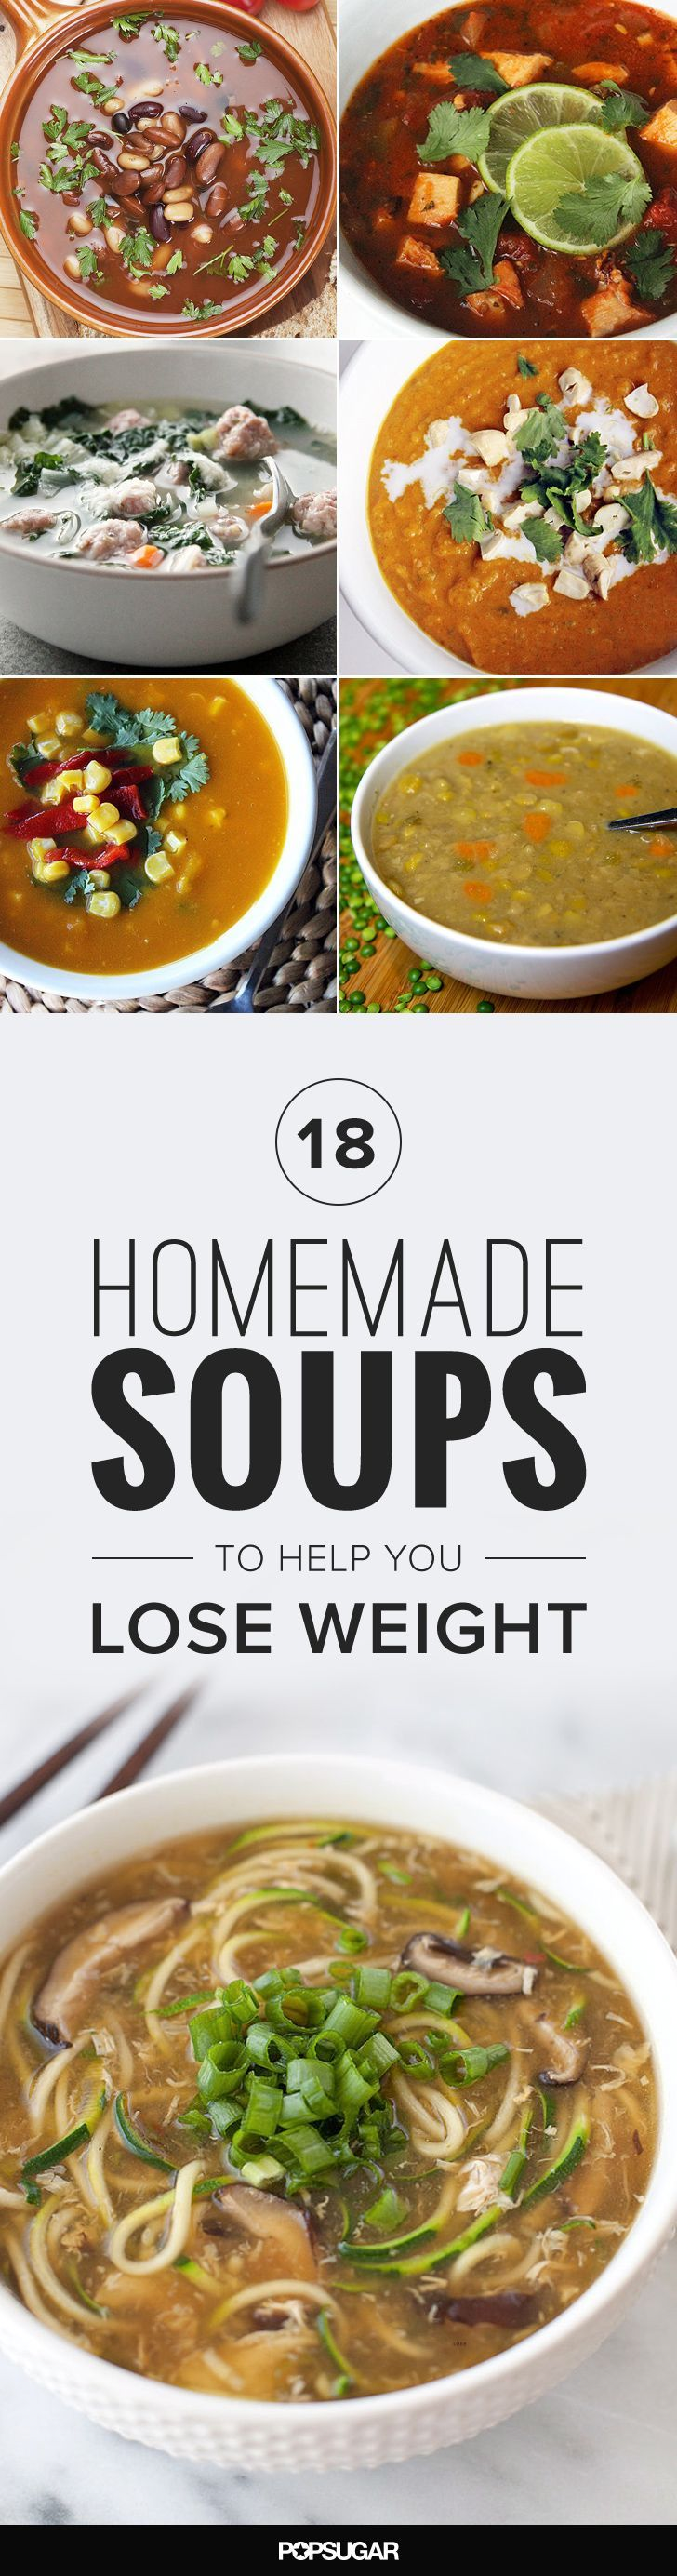 Wanna Lose Weight..? ==> DELICIOUS HOMEMADE SOUPS ... If you're looking to lose weight, celebrity trainer Joel Harper recommends serving up soup for dinner. #LoseWeight #Soups